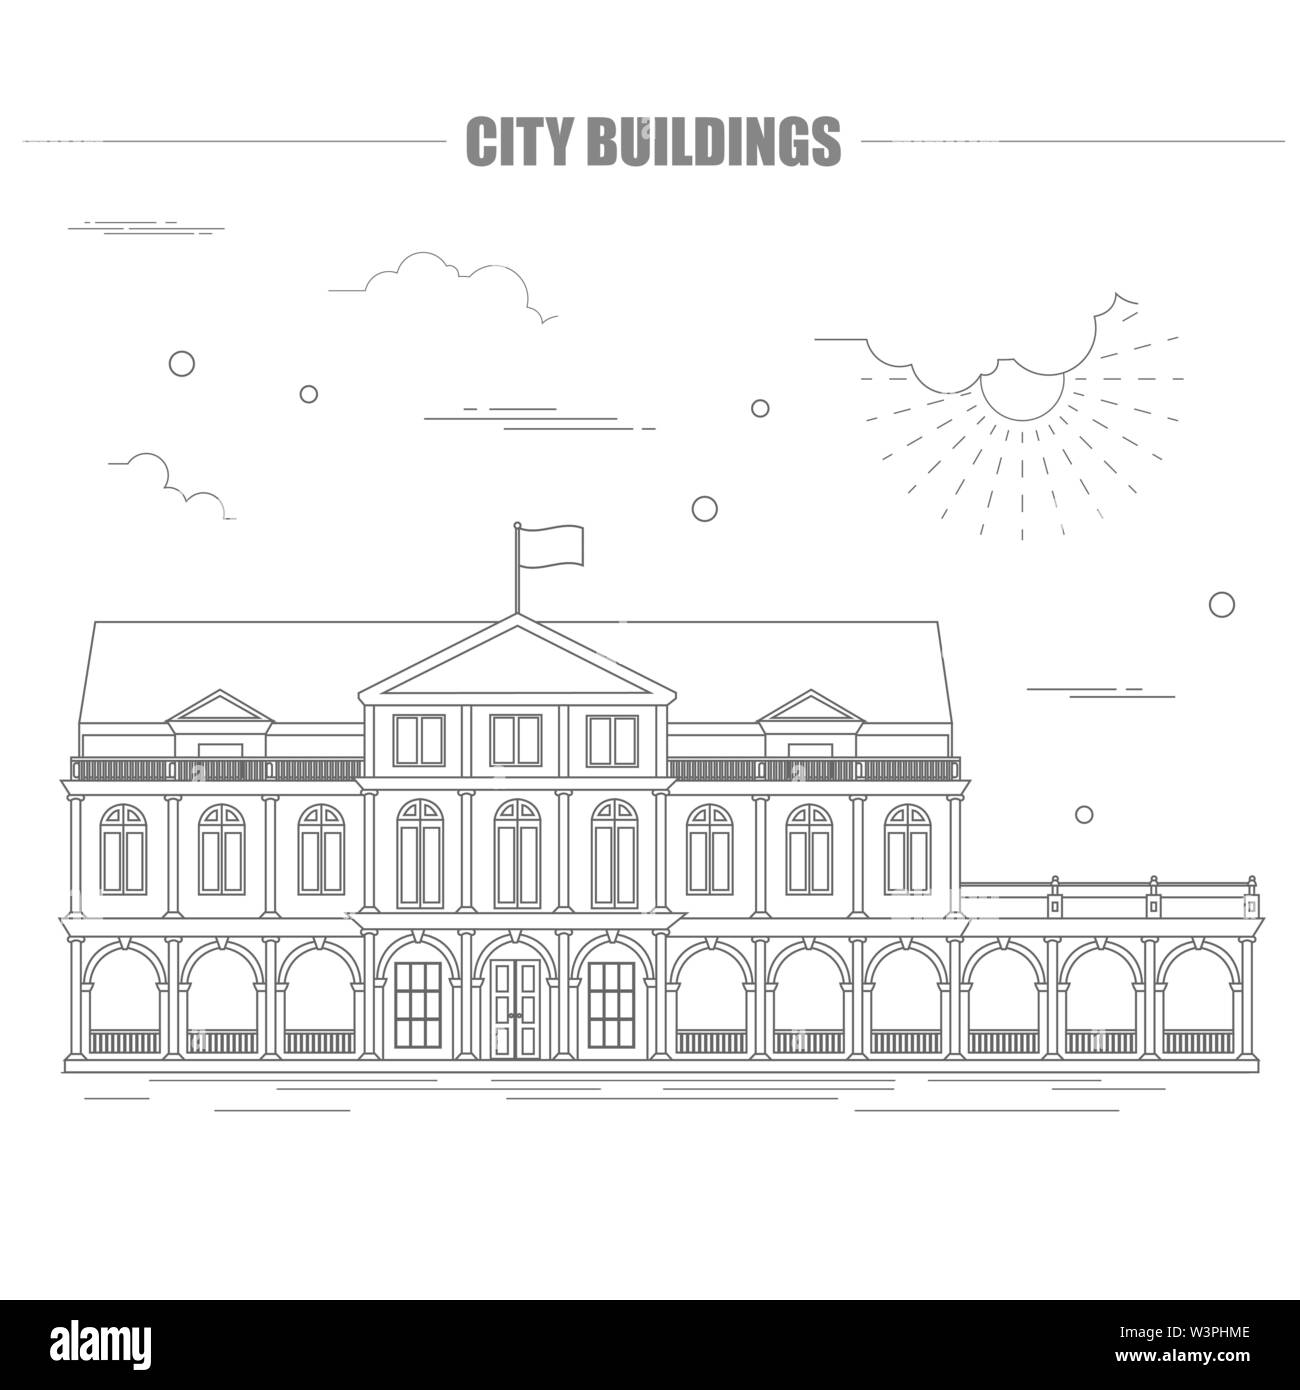 City buildings graphic template. Suriname. Vector illustration - Stock Image